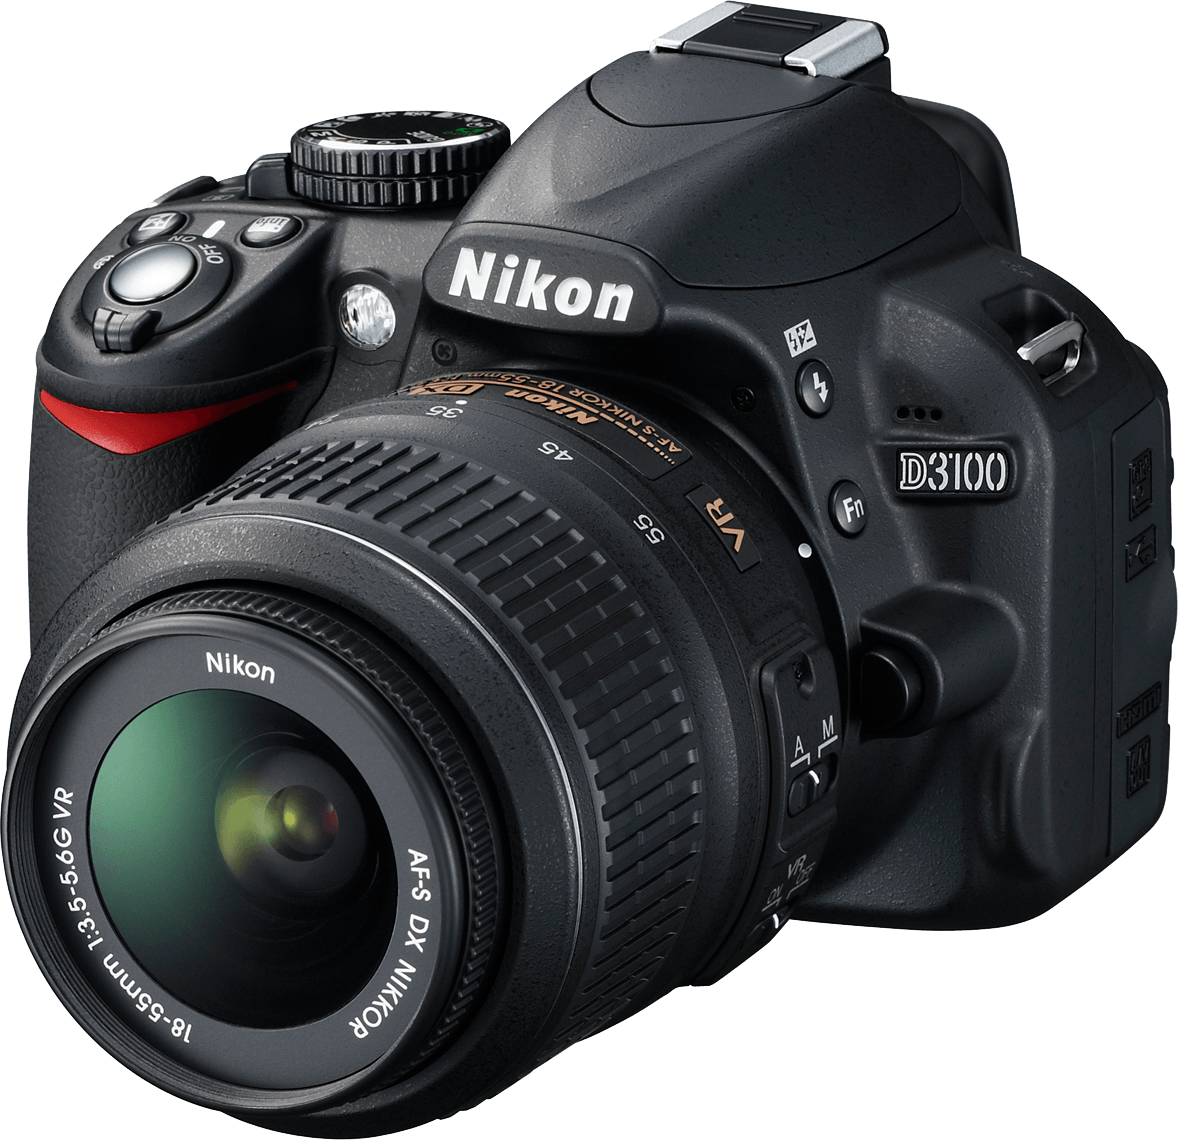 Nikon D3100 Photo Camera PNG Picture 20759